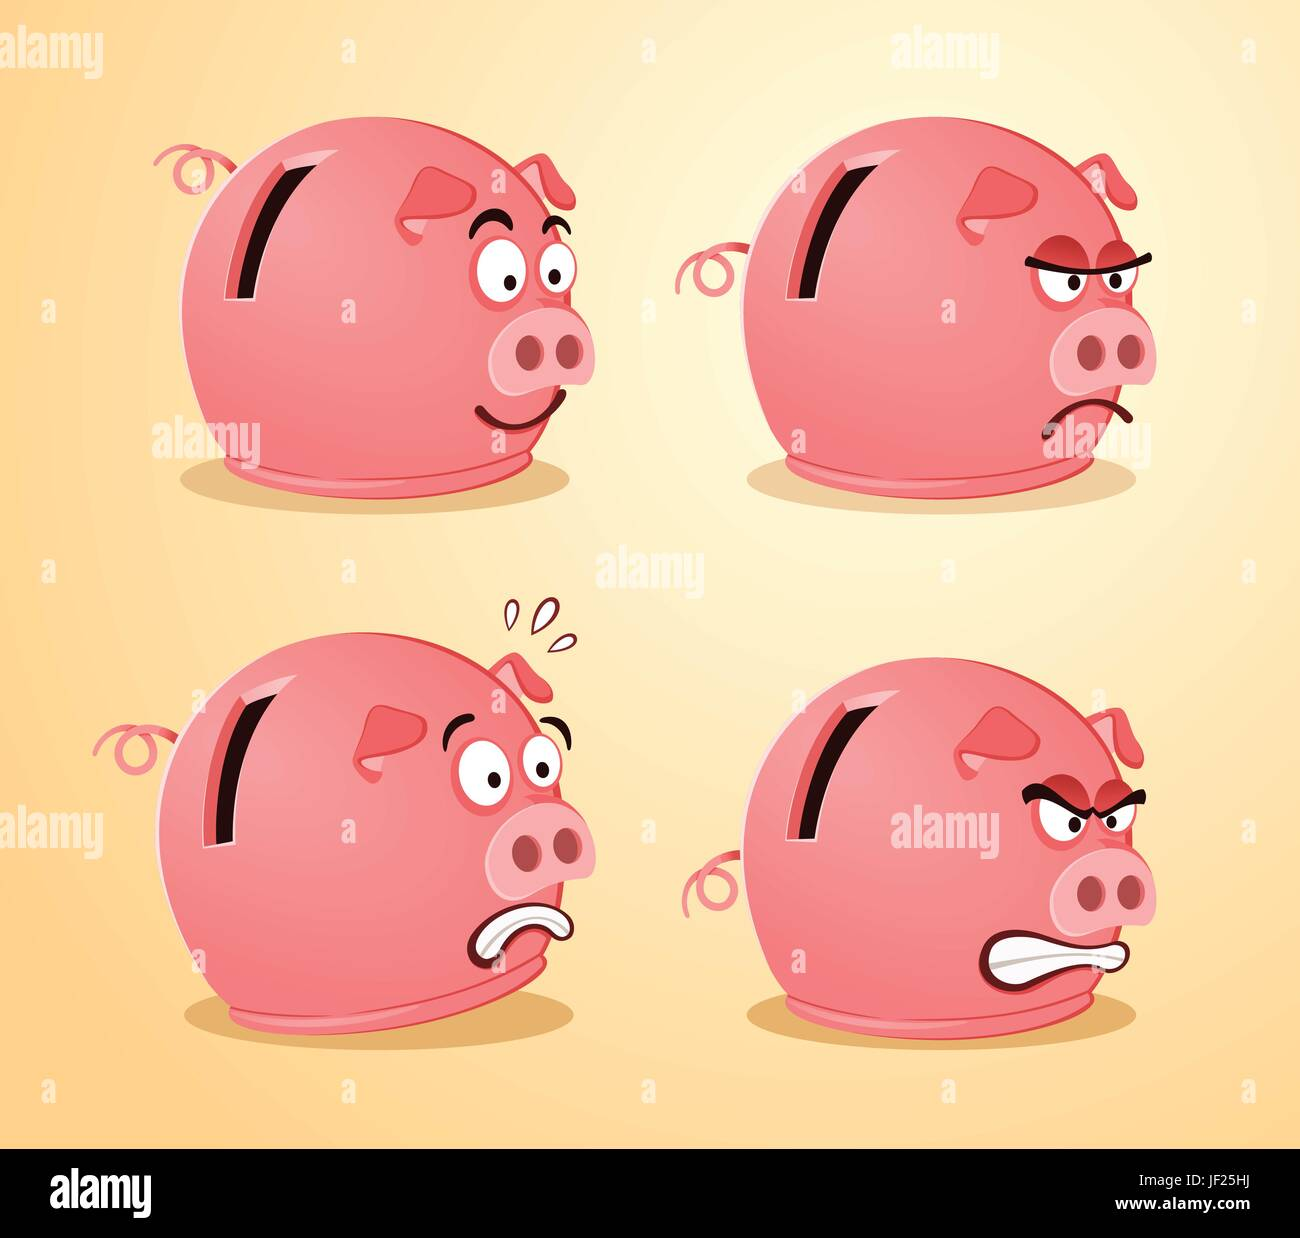 laughs laughing - Stock Vector